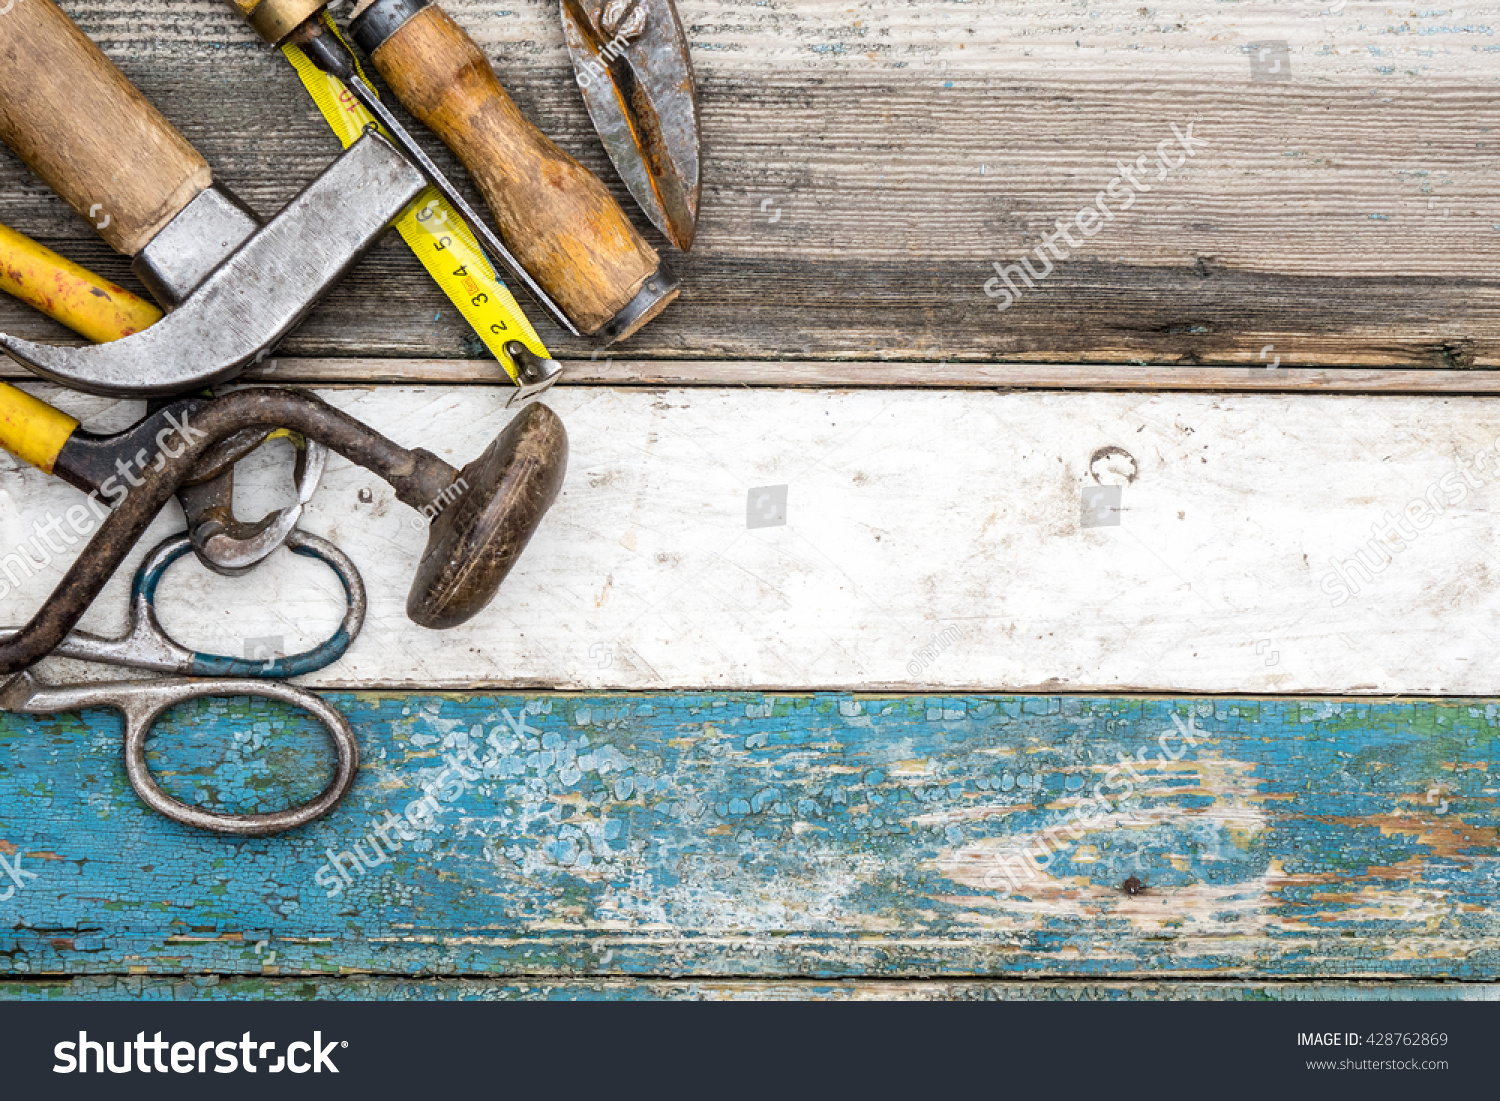 Hammer, screwdriver, wrench, chisel, tape measure and other workshop ...